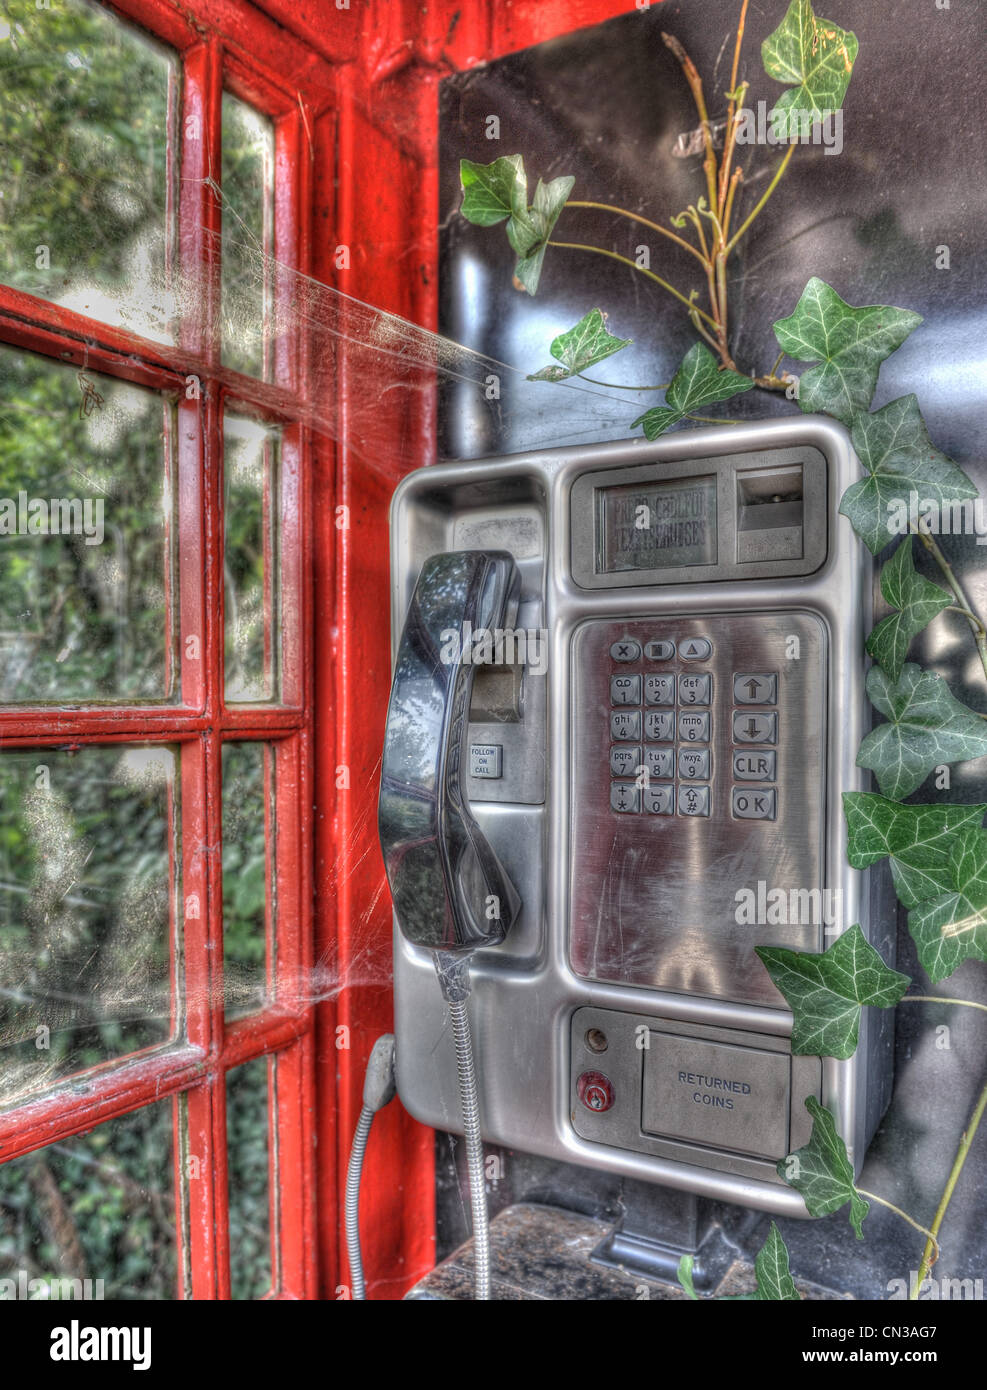 Disused telephone booth with ivy growing inside - Stock Image